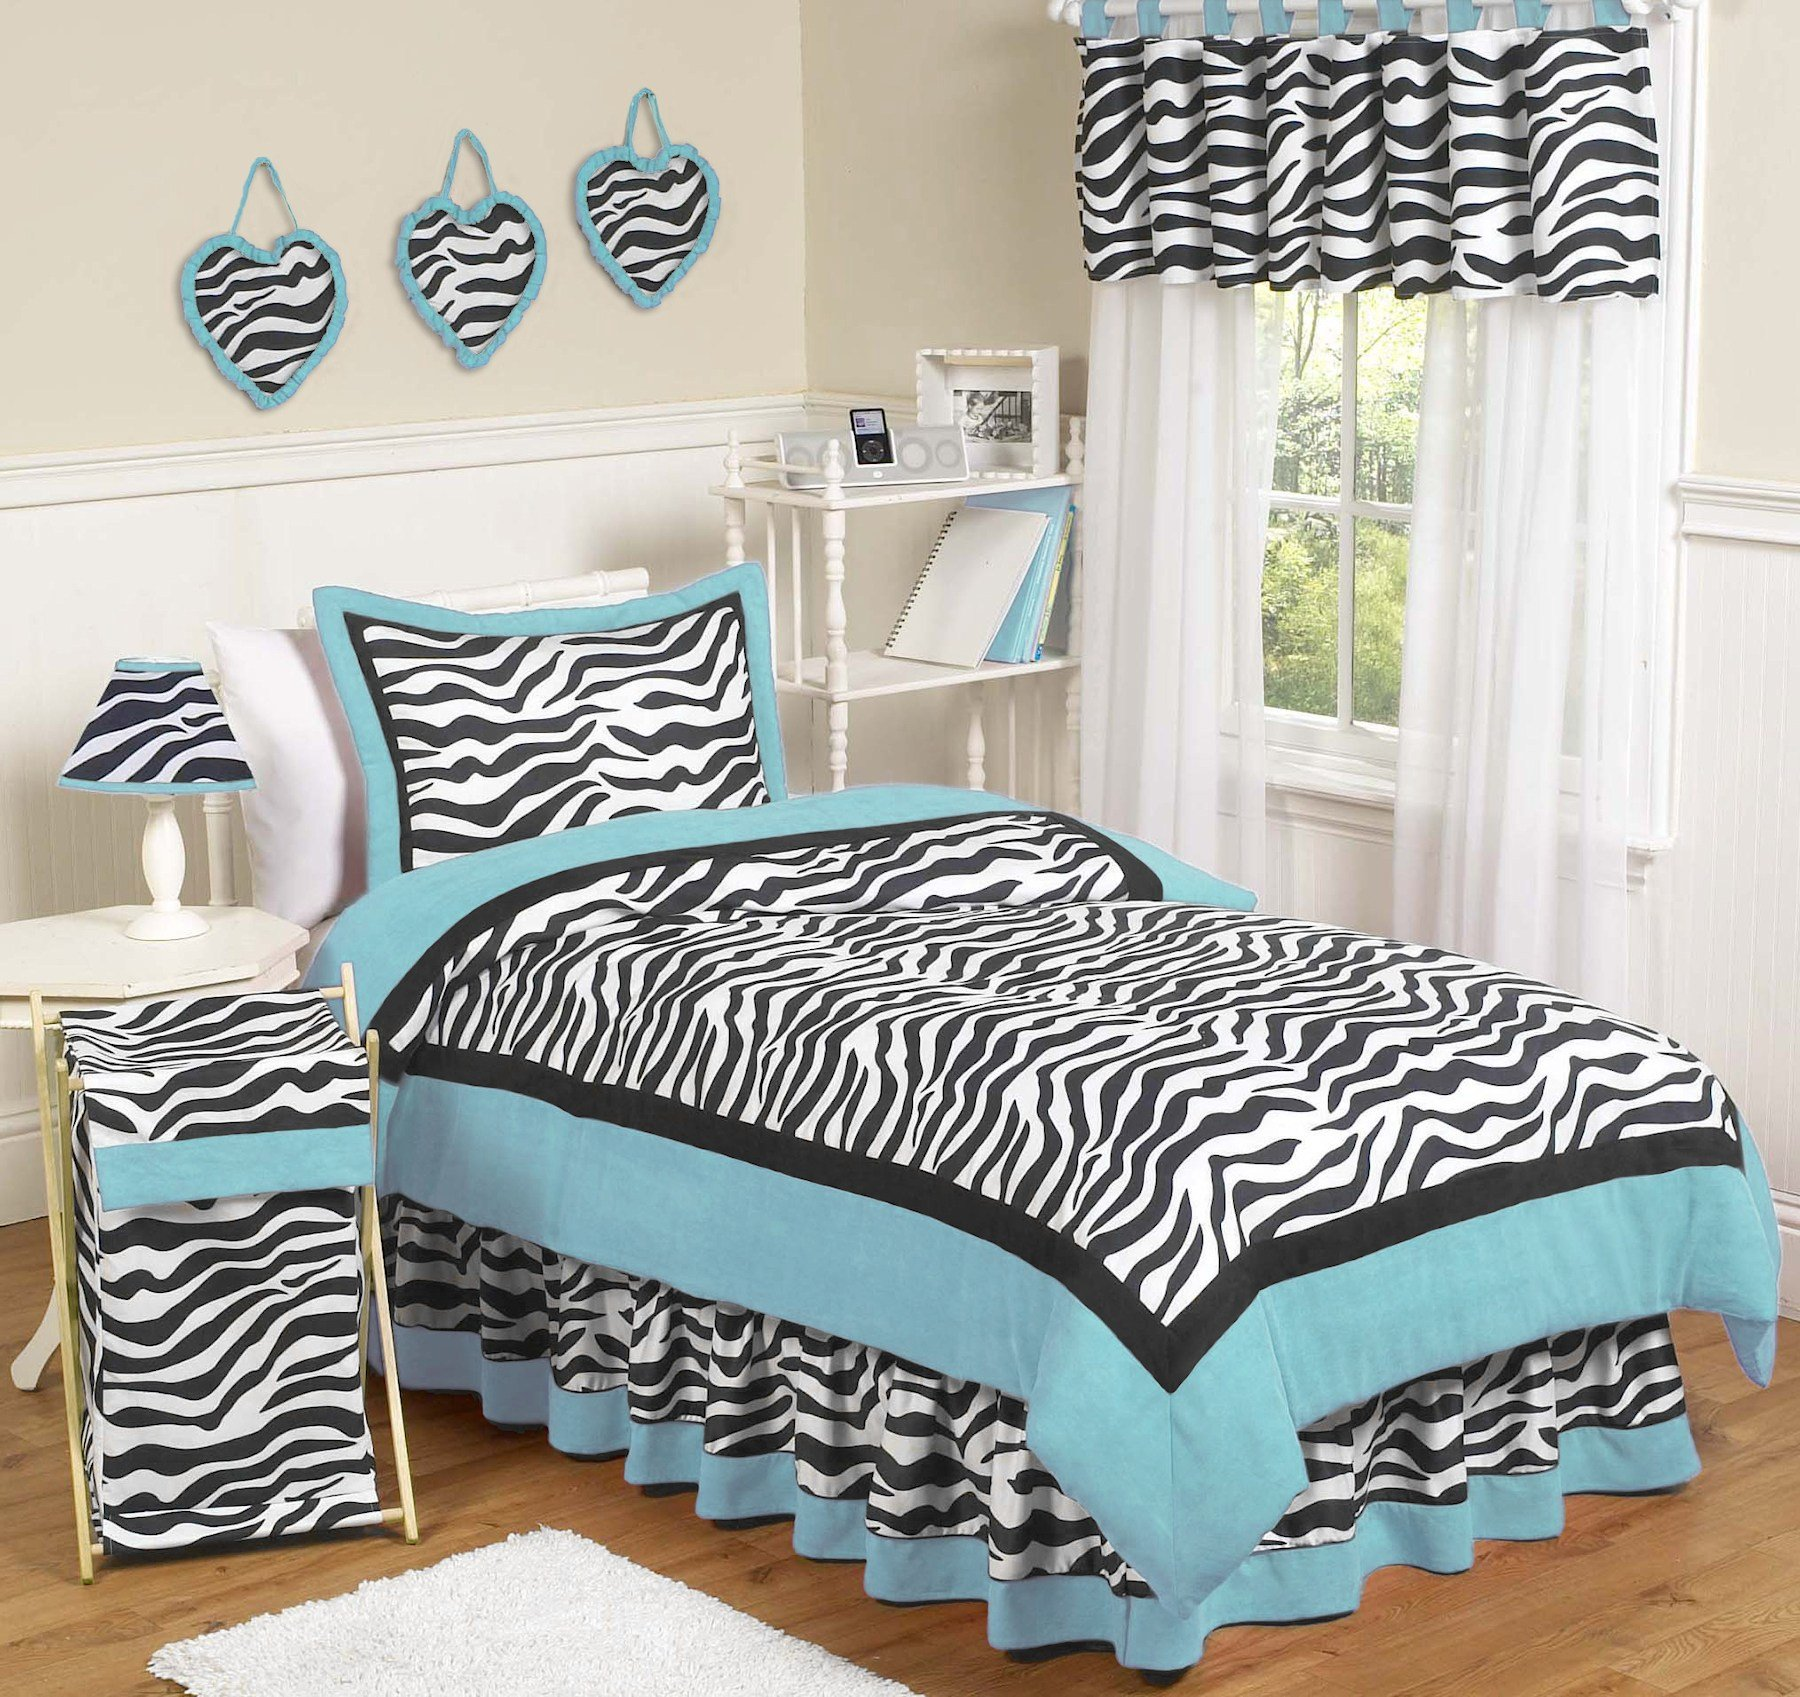 Best Blue Zebra Bedding Twin Comforter Set For Girls 4Pc Bed In With Pictures